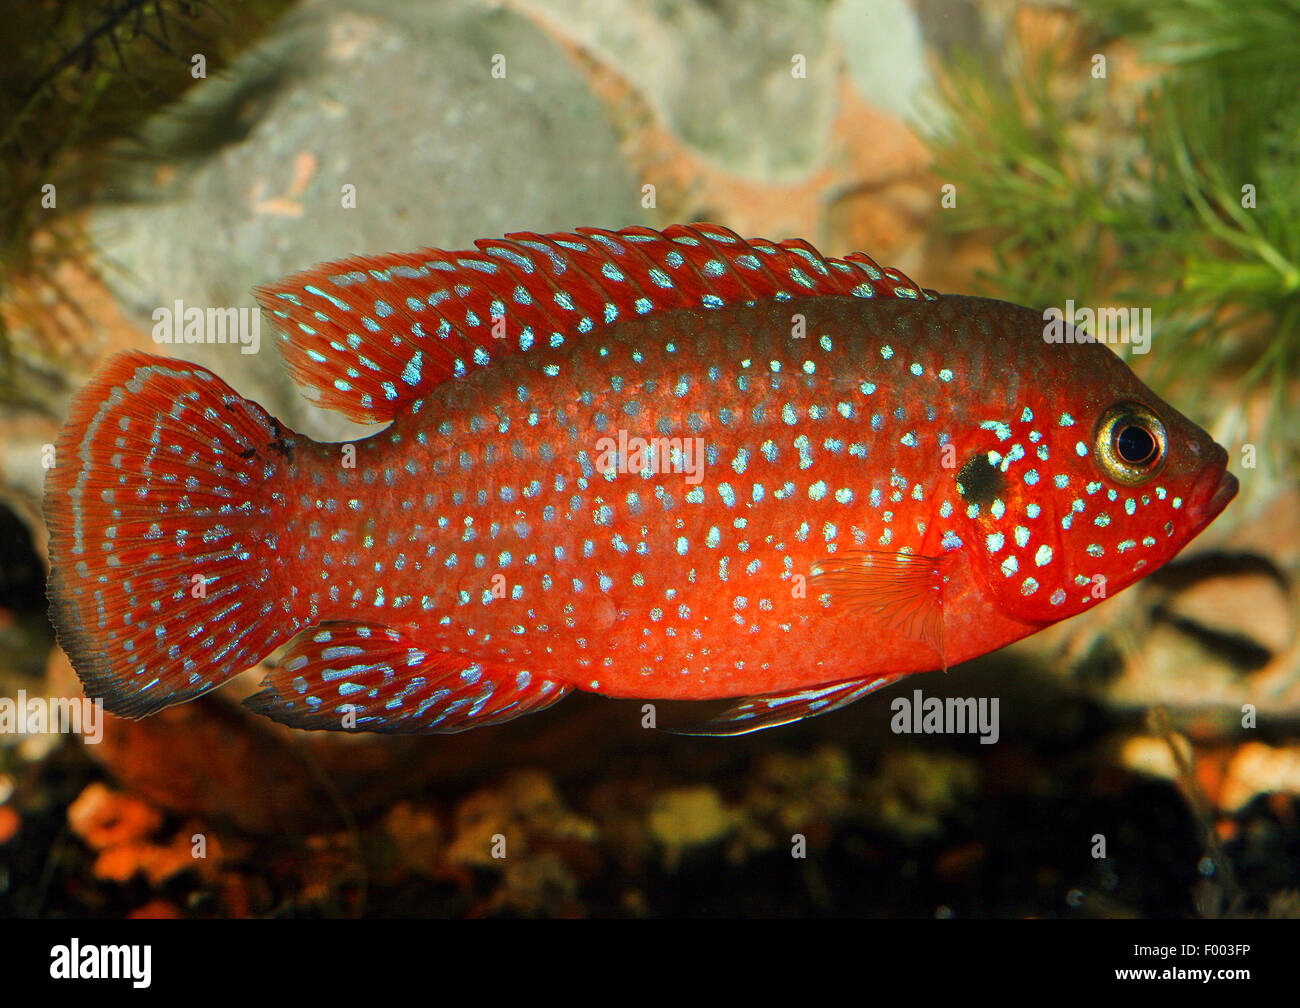 Fish Red Spots Stock Photos & Fish Red Spots Stock Images - Alamy